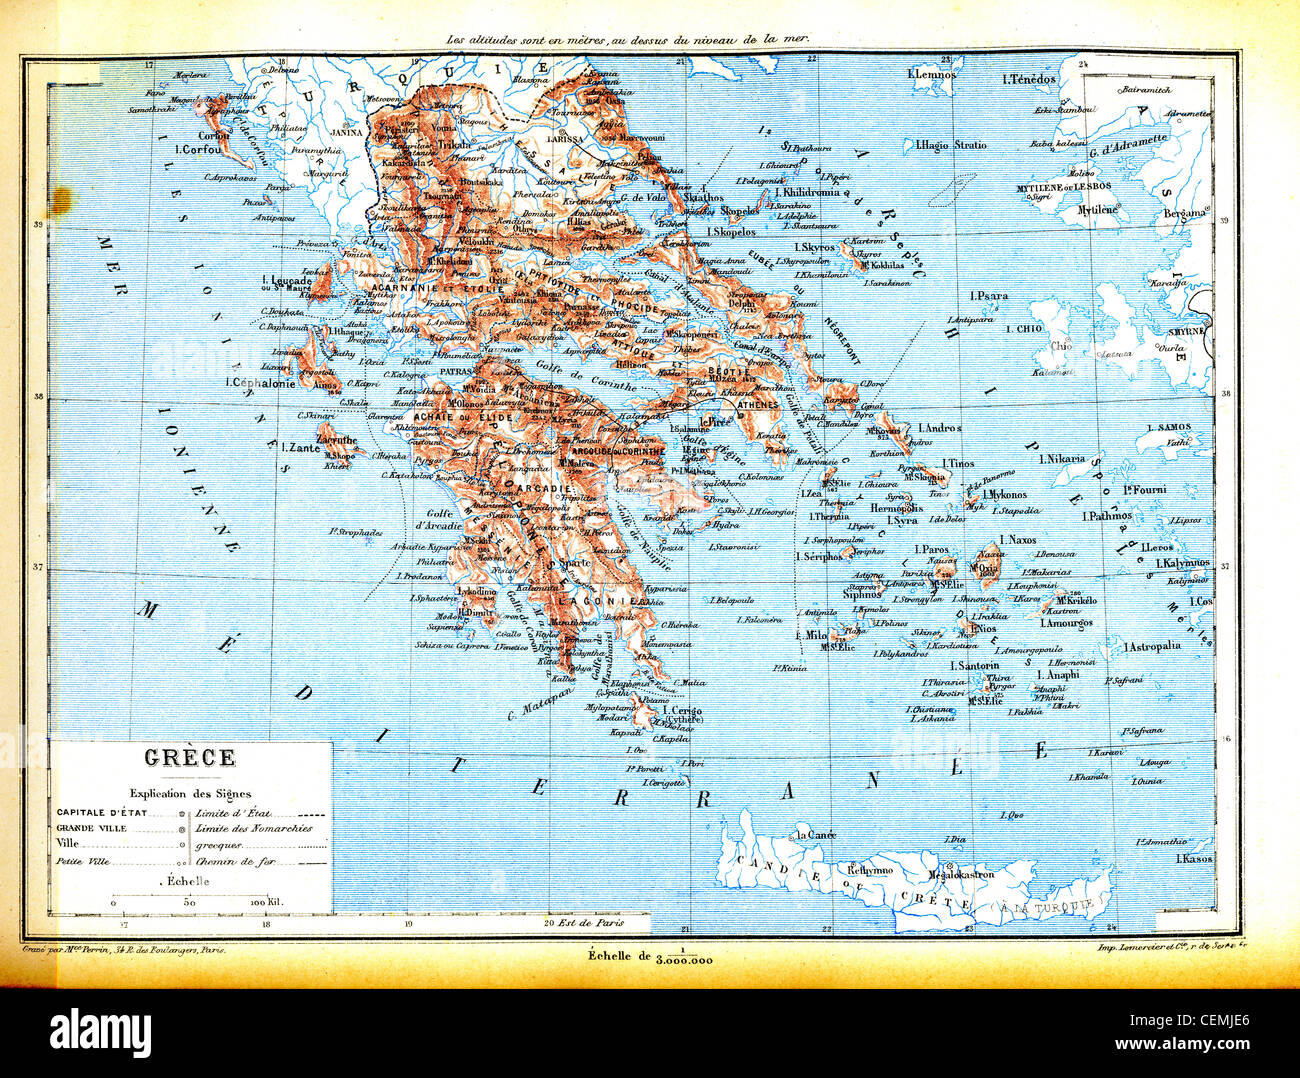 The map of Greece with explanation of signs on map. Stock Photo